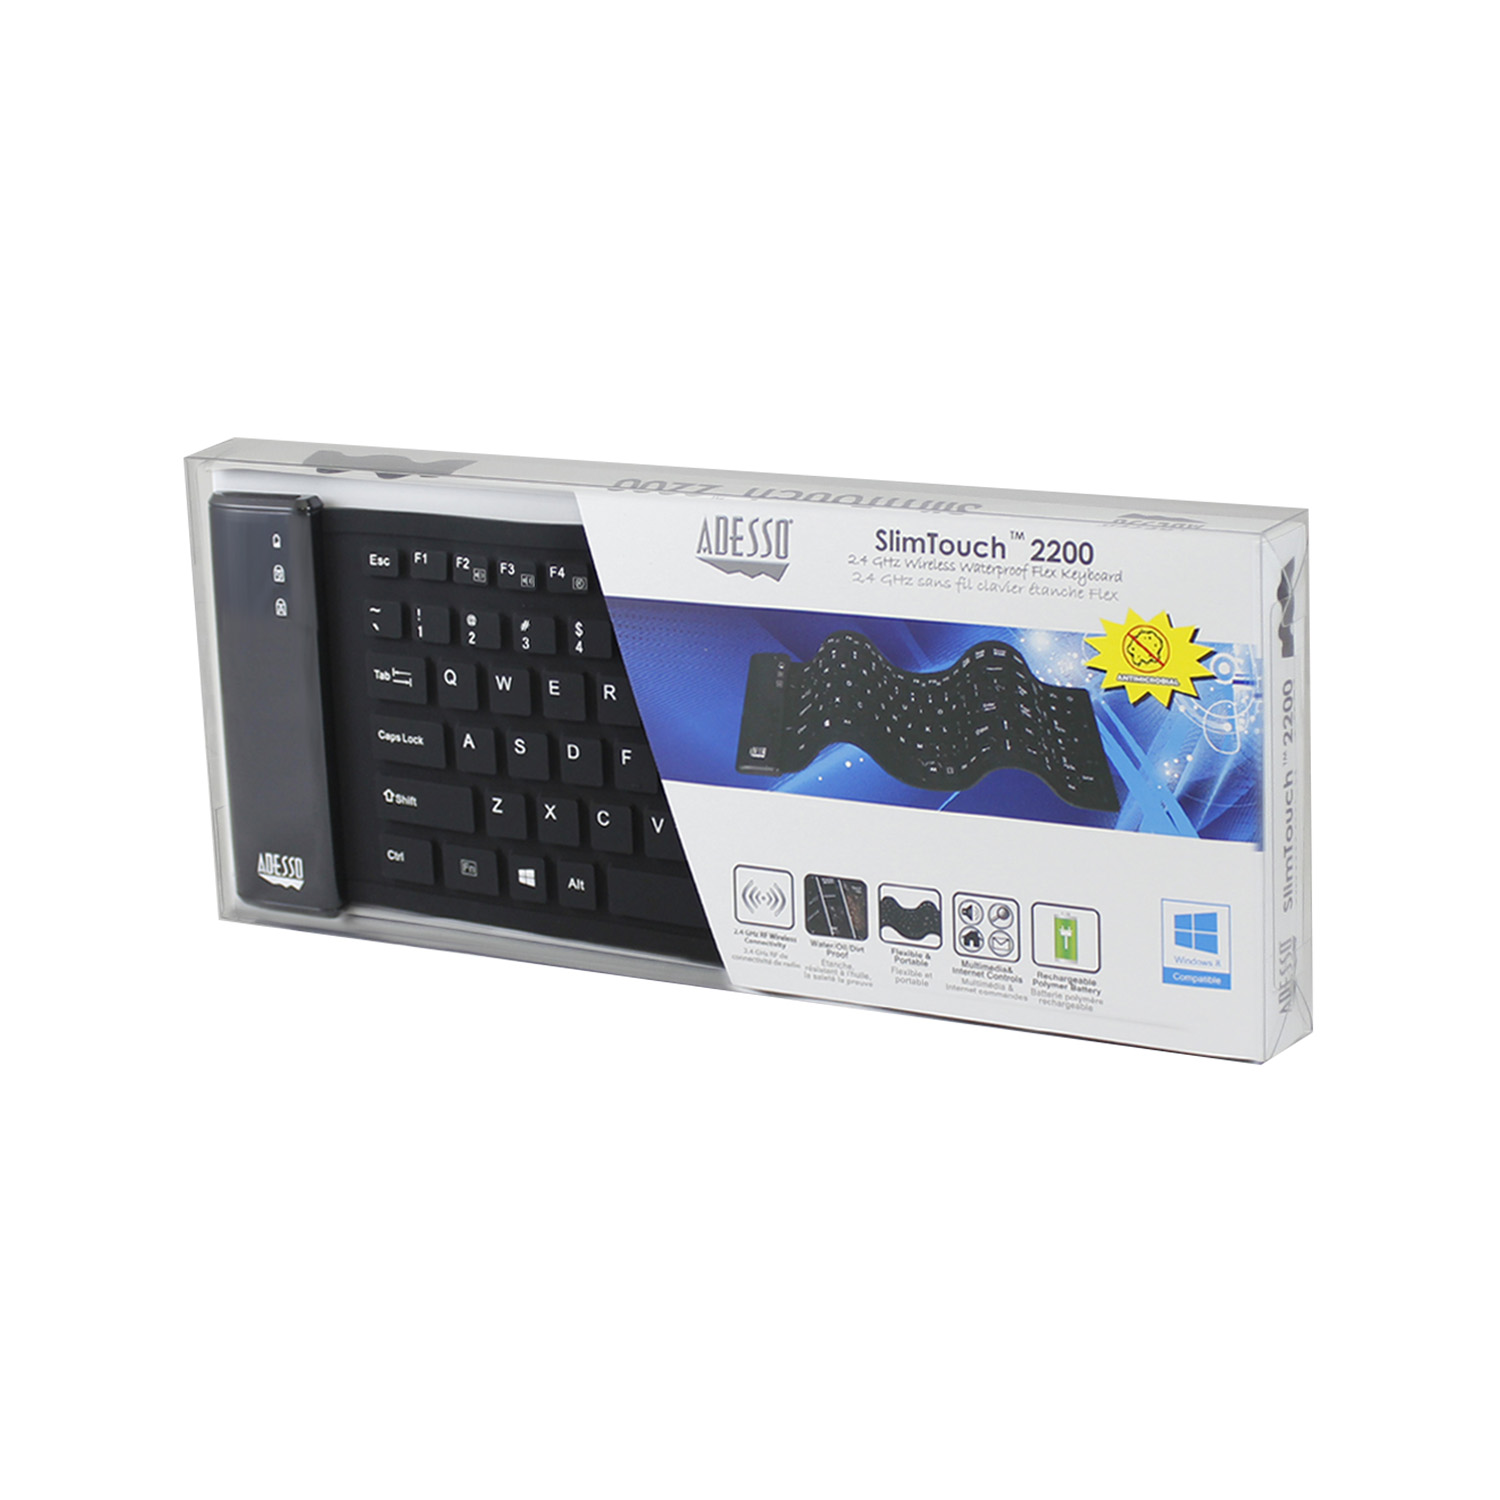 slimtouch 2200 wireless waterproof antimicrobial compact keyboard adesso inc your input. Black Bedroom Furniture Sets. Home Design Ideas